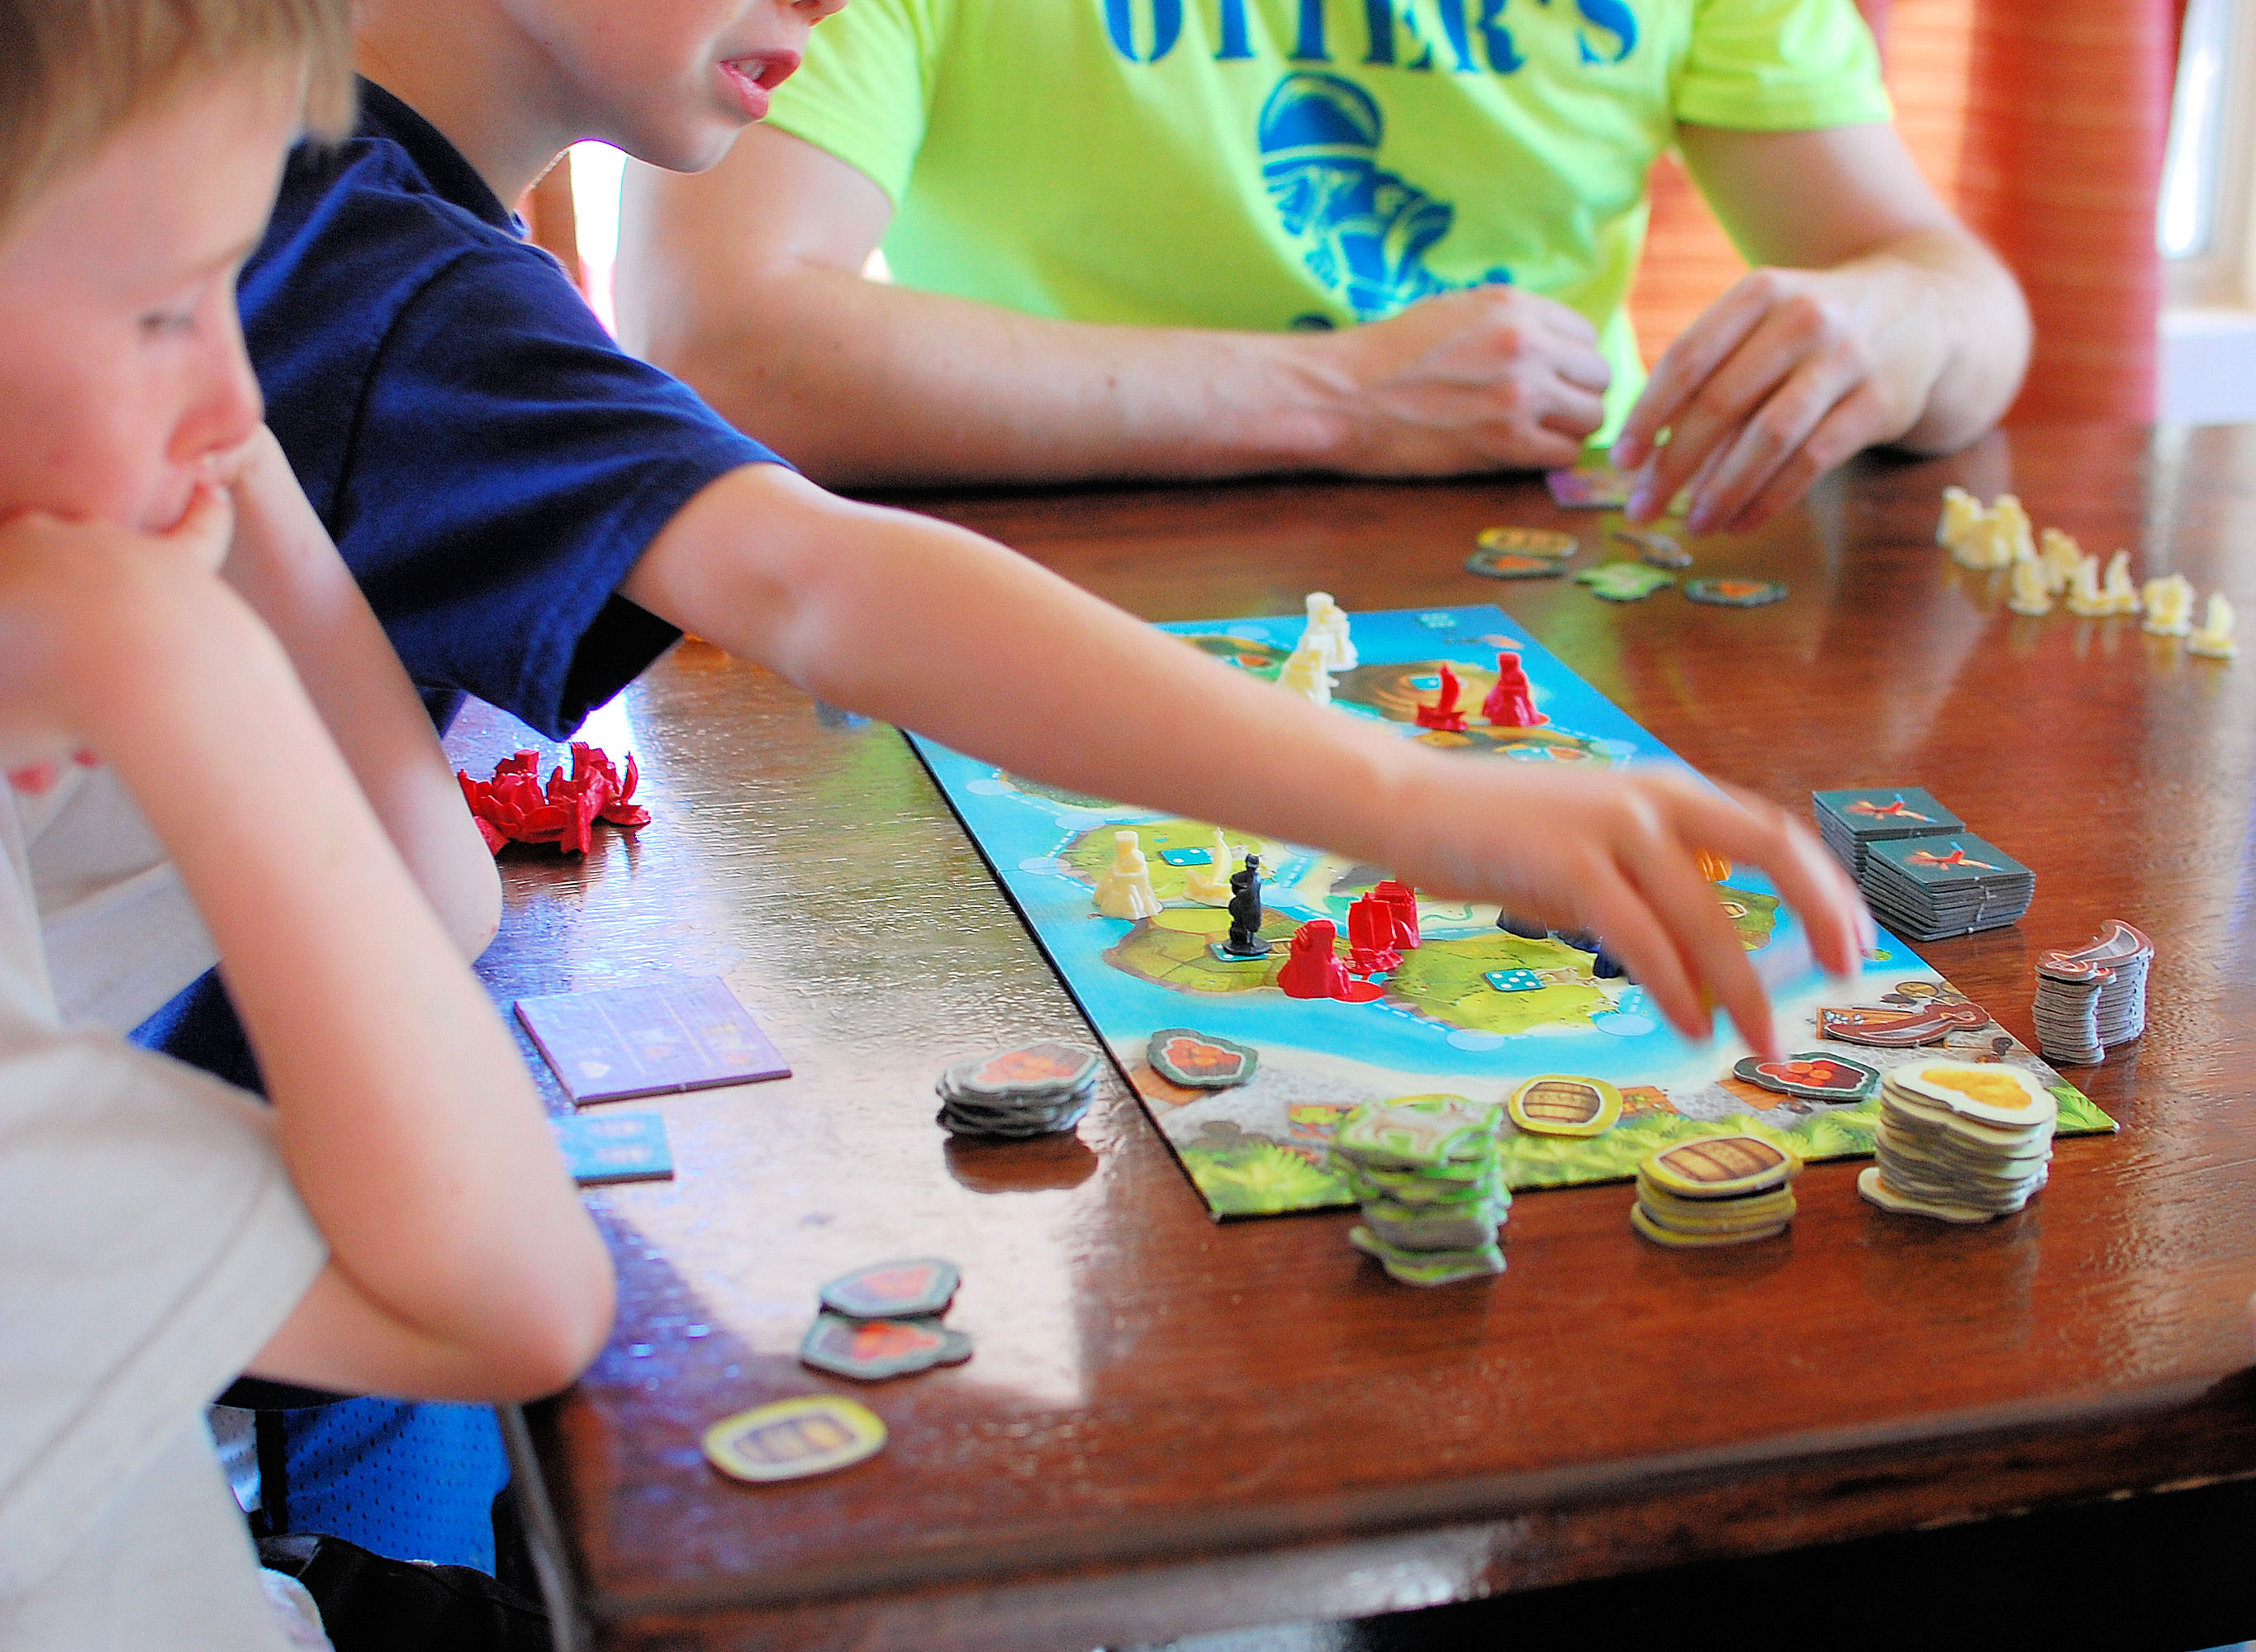 Cataan Junior is an awesome game for 6-10 year olds!